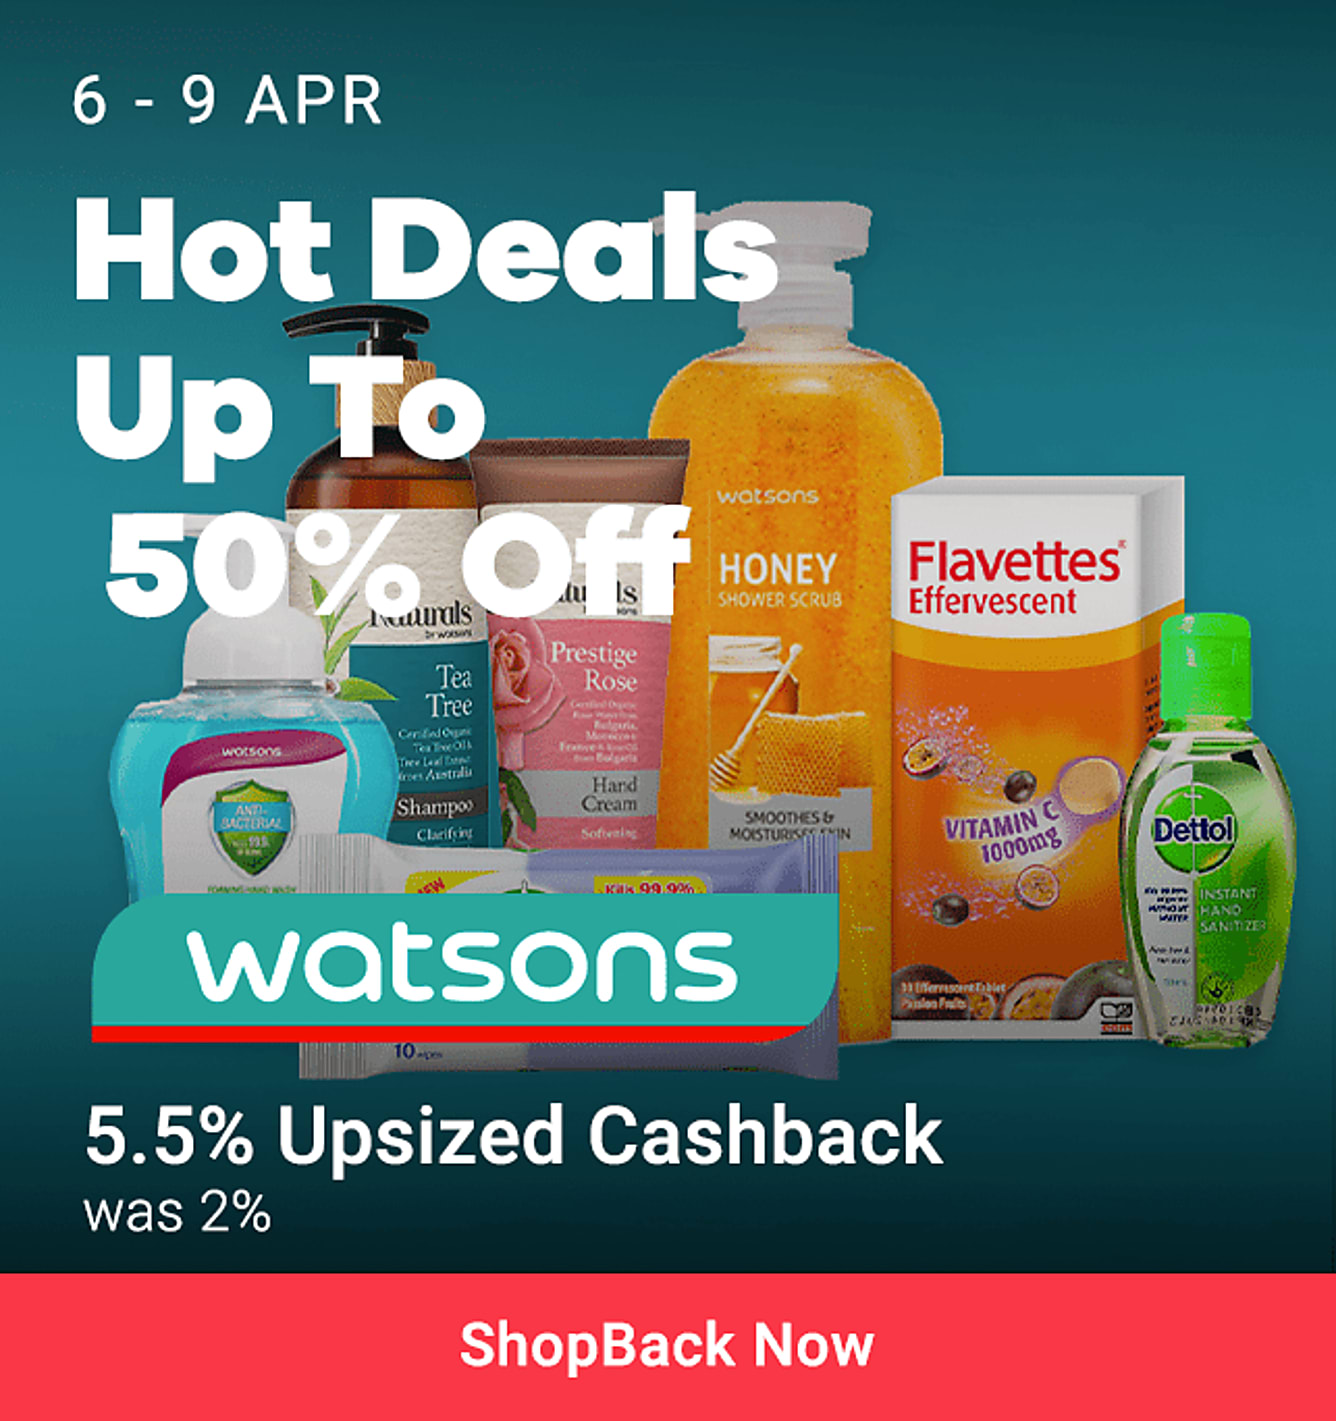 watsons up to 5.5% Upsized Cashback